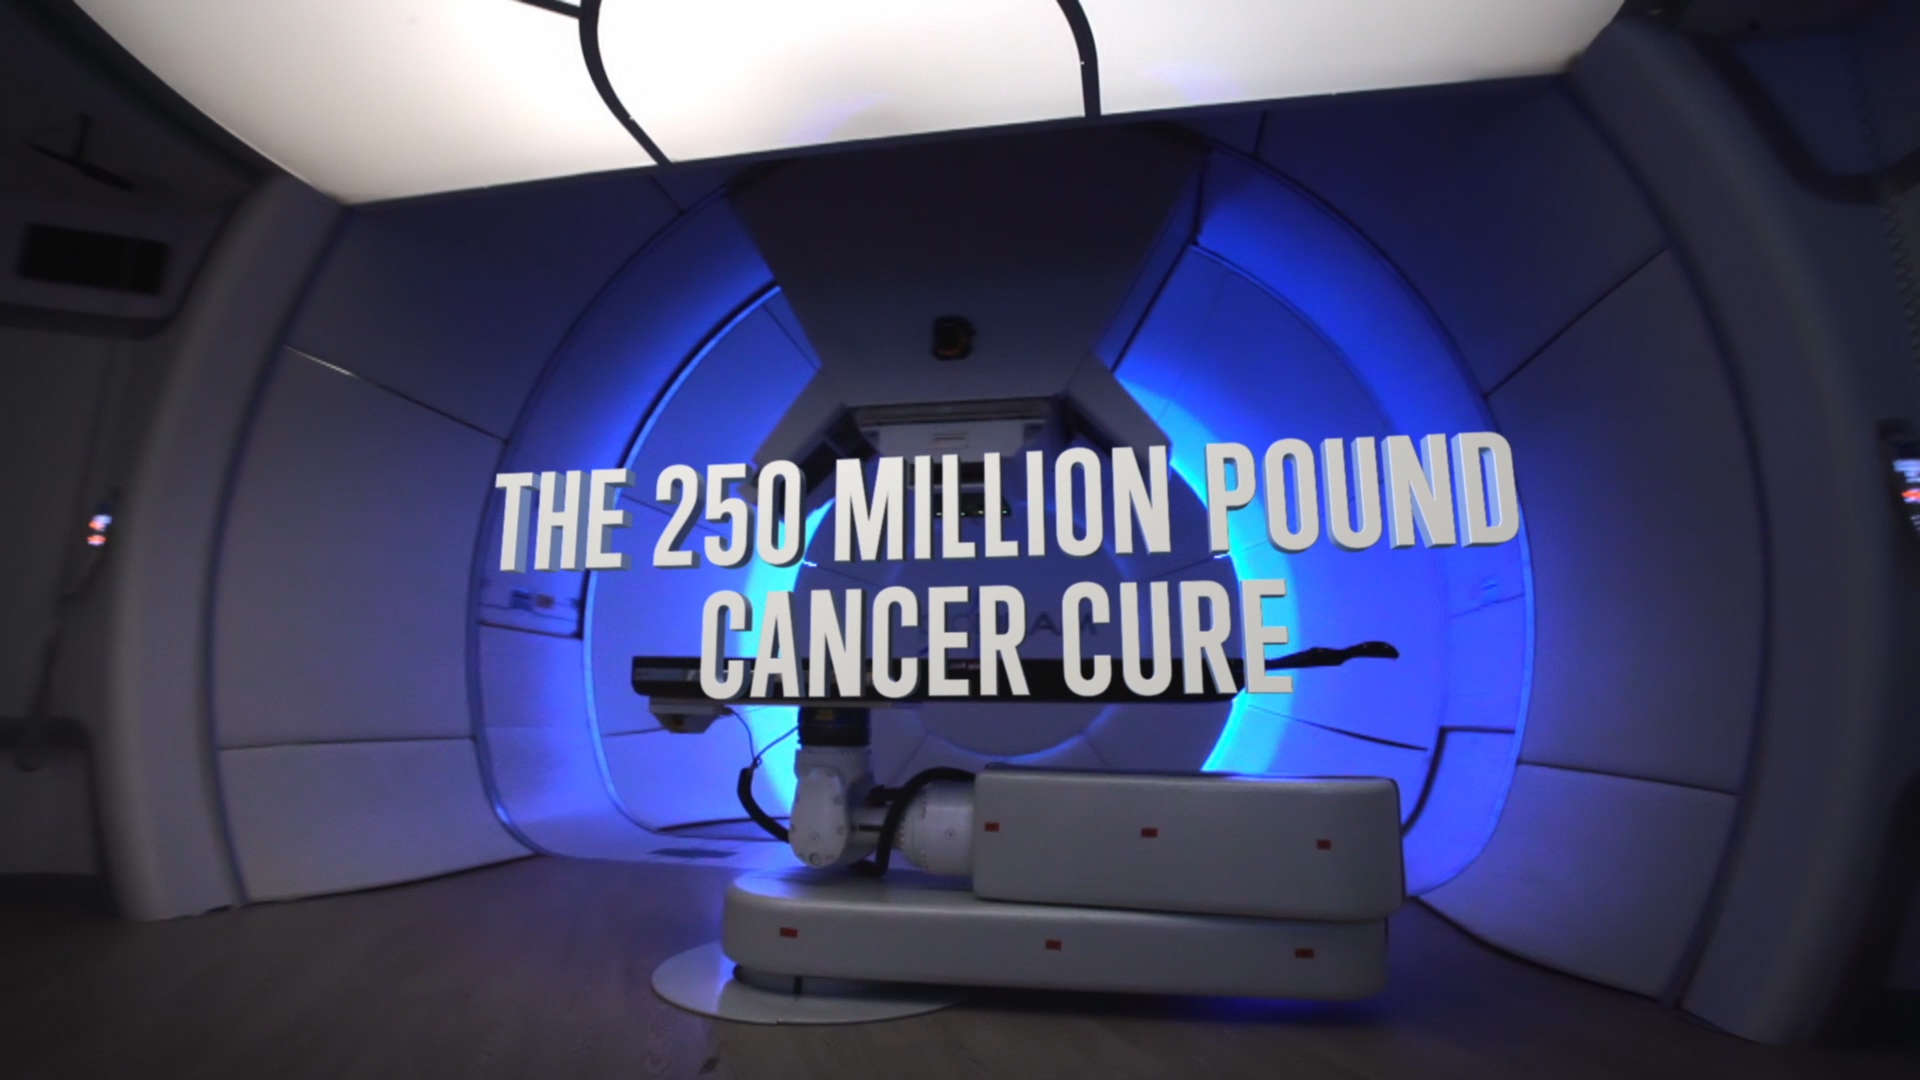 The 250 Million Pound Cancer Cure